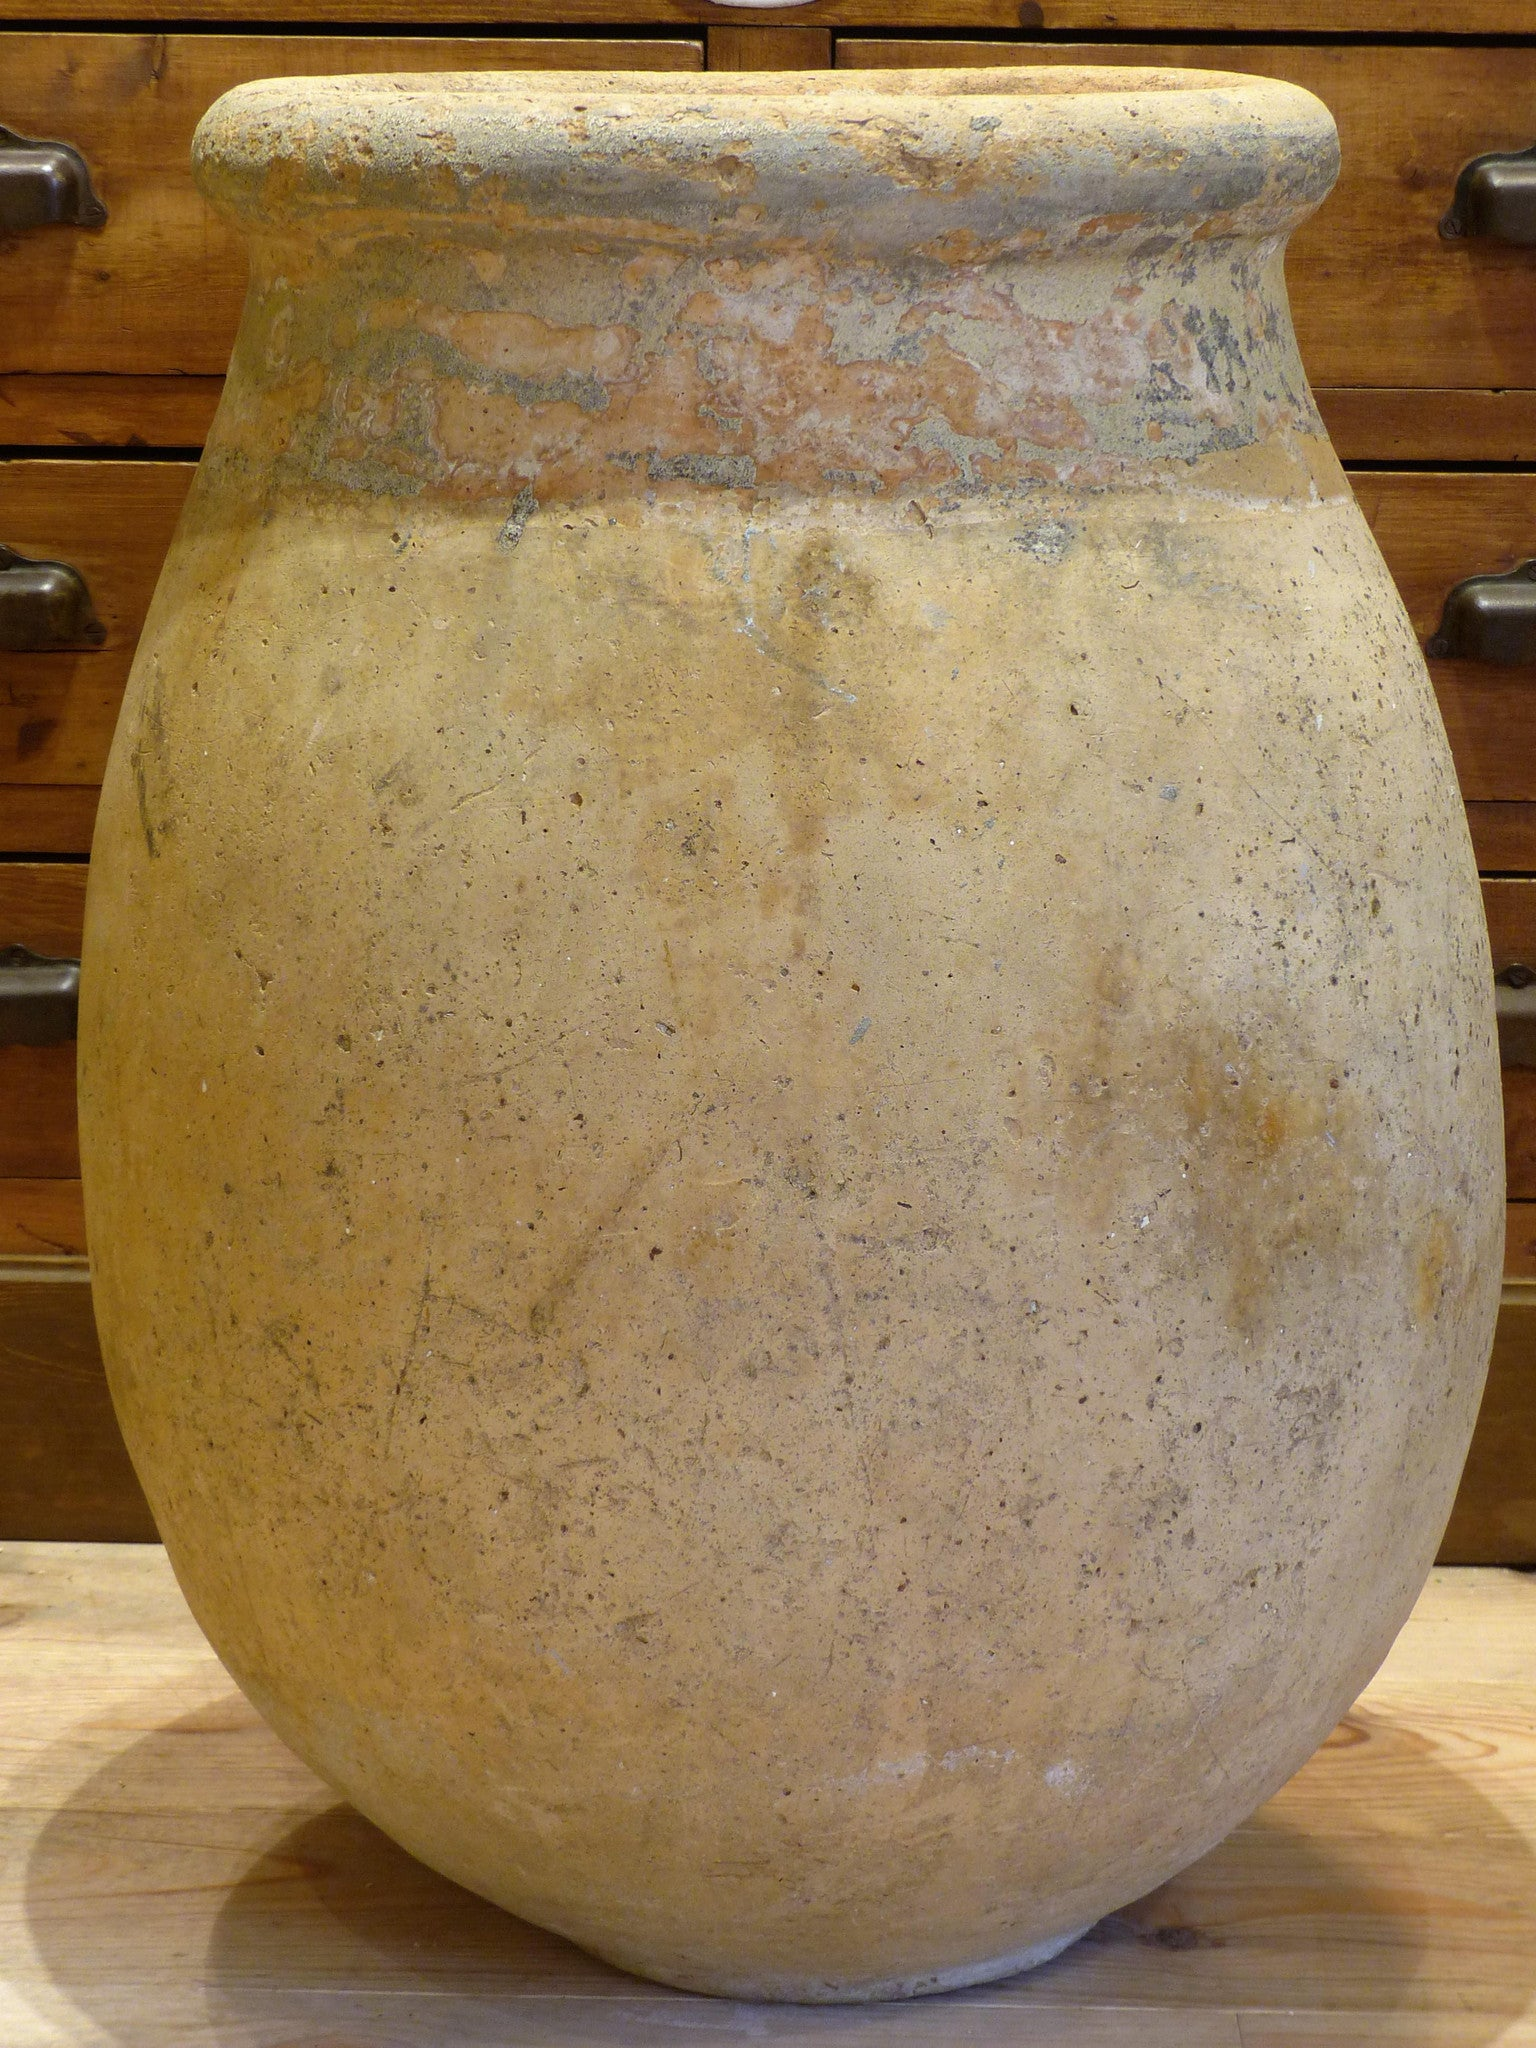 French biot jar - 19th century